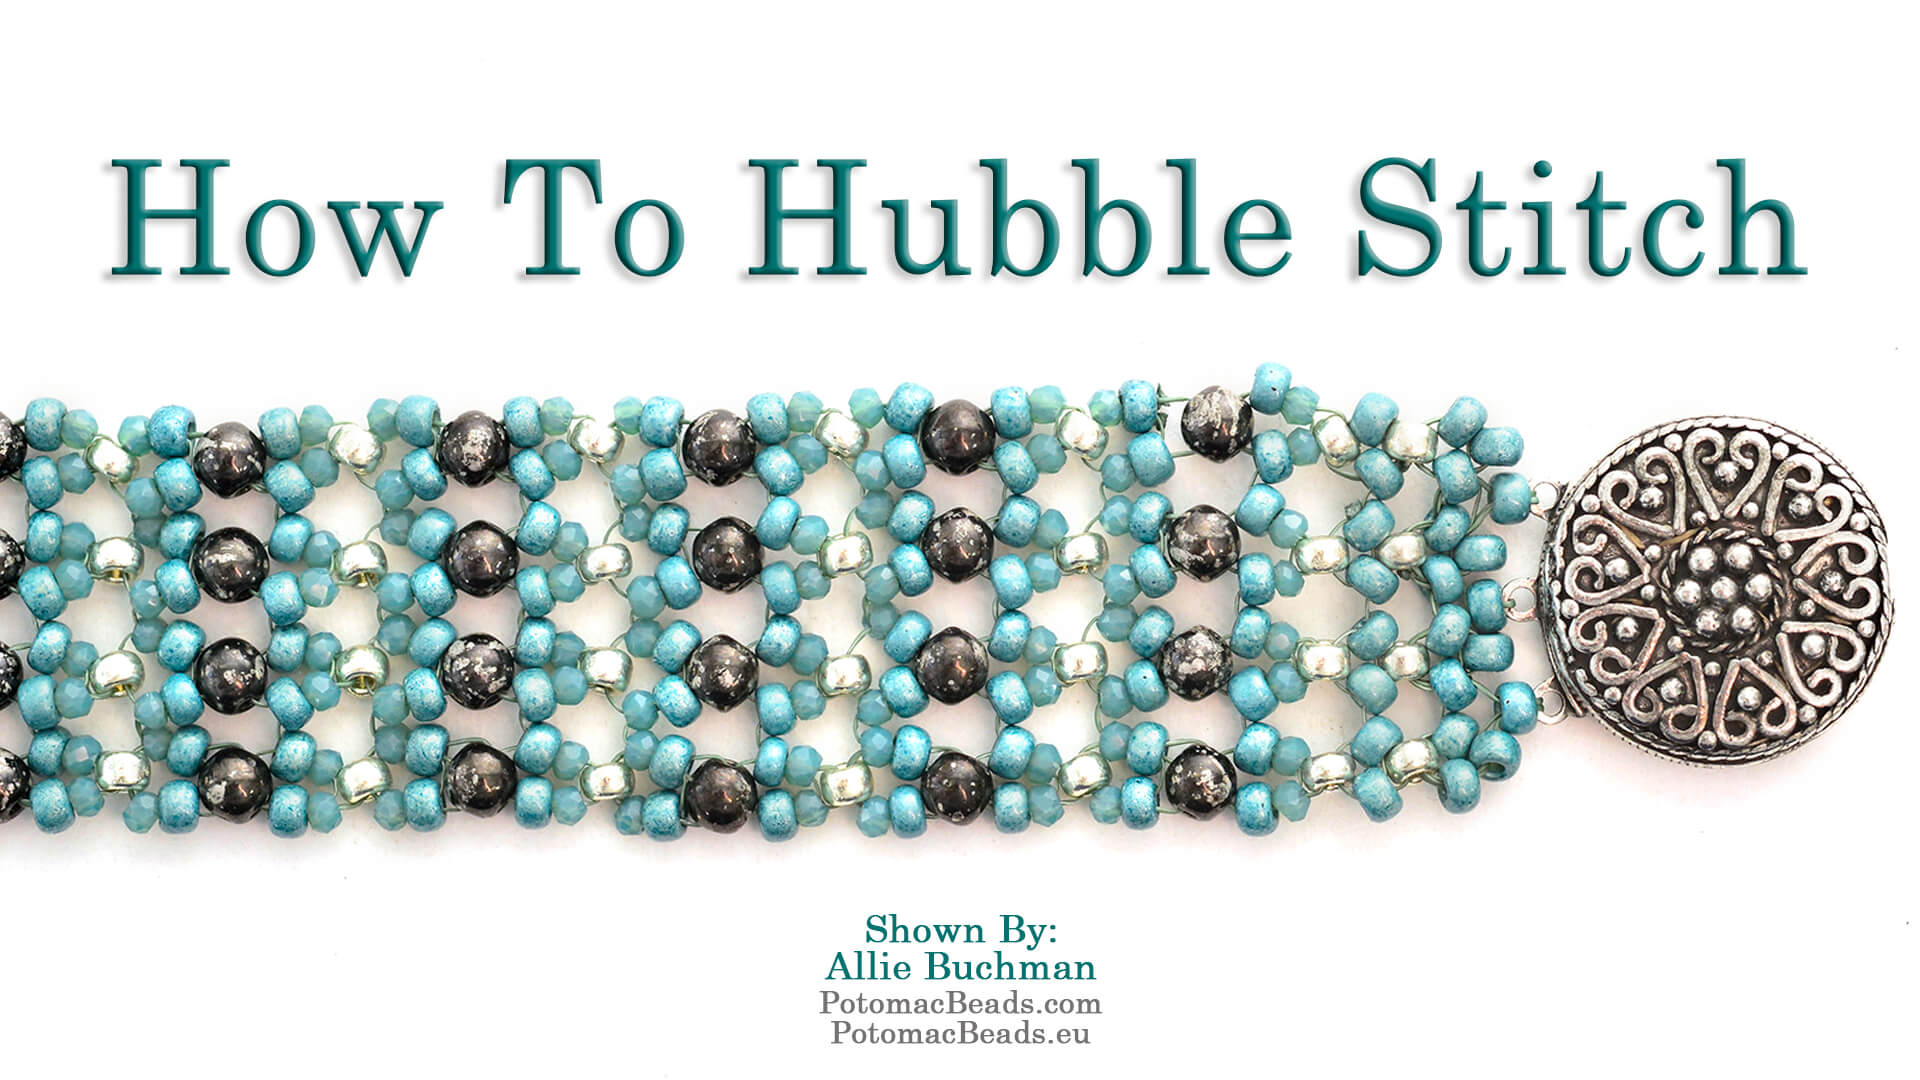 How to Bead / Videos Sorted by Beads / Potomac Crystal Videos / How to Hubble Stitch